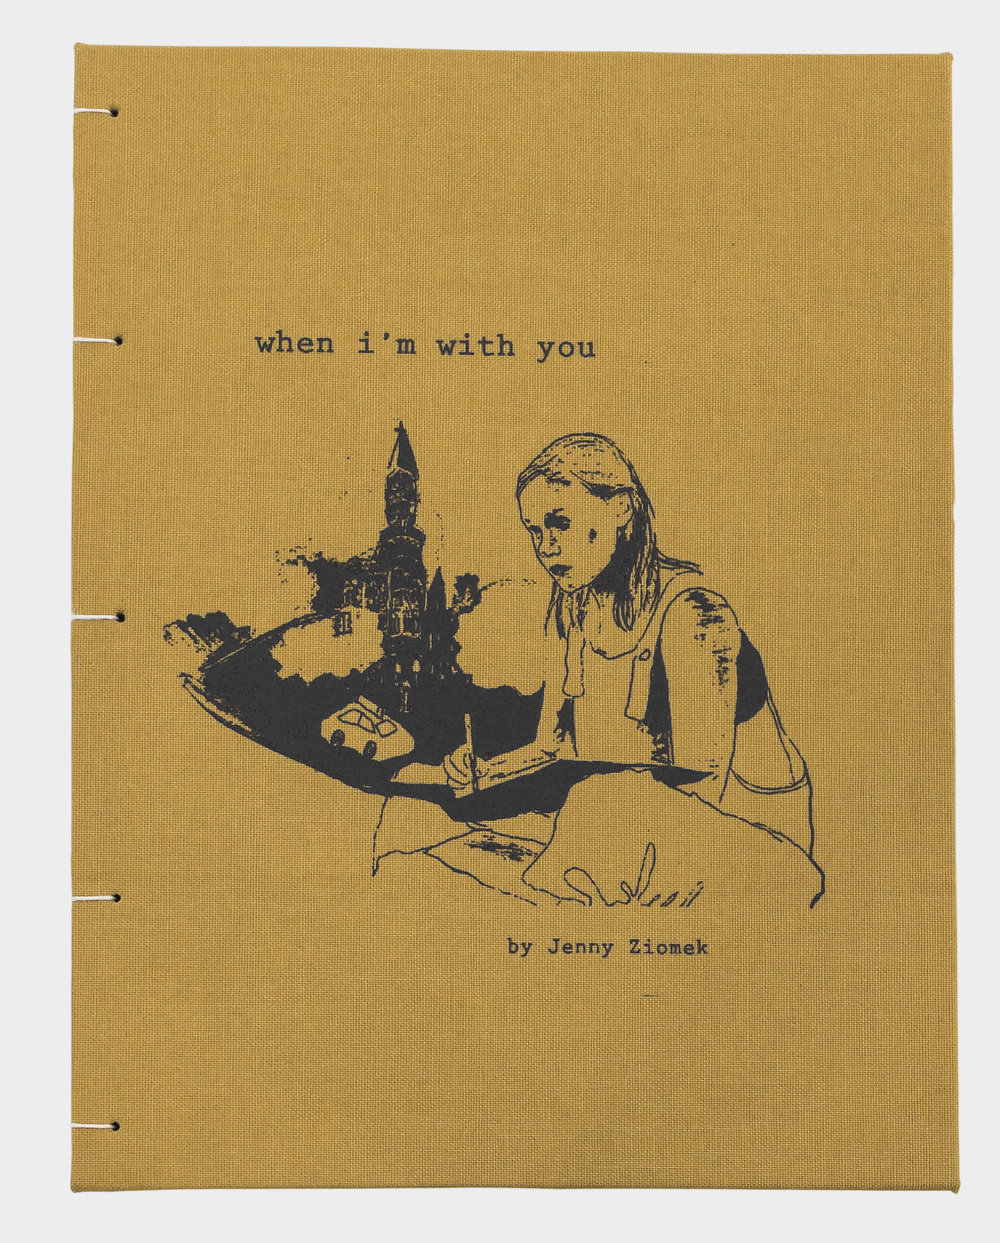 When I'm With You - a mixed media graphic novel about love, New York, and the unreliability and absurdity of memoryartist book in an edition of 70 copies, 6.5